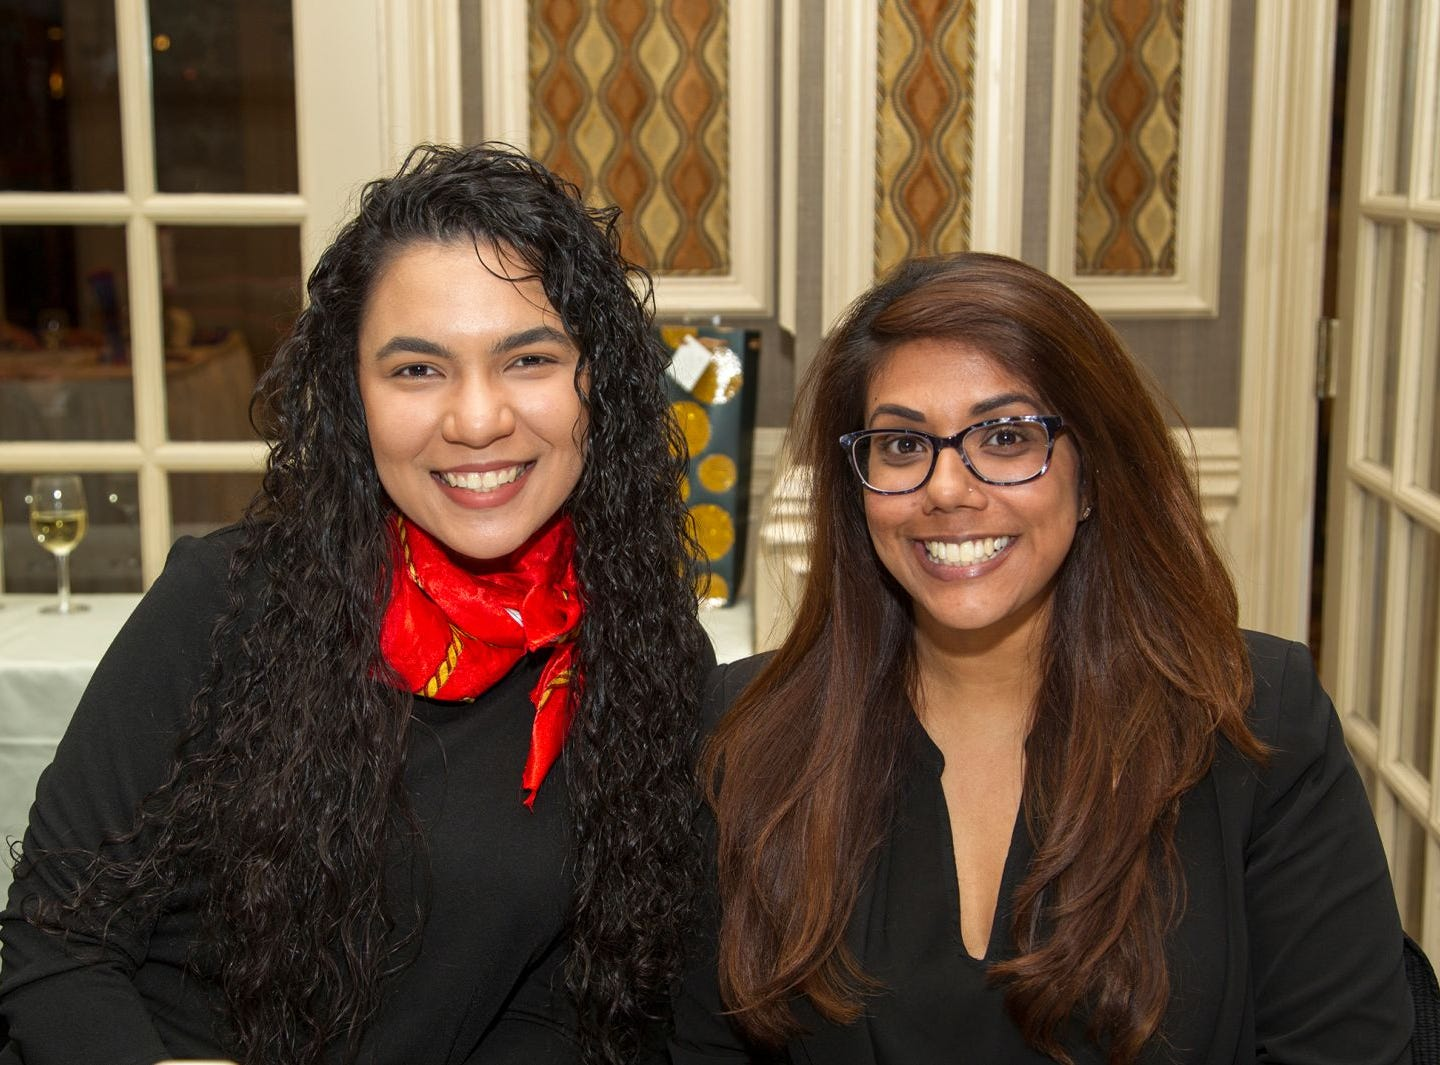 Evelyn Pena, Tansina Ahmed. A Night at the Races hosted by OASIS at the Brownstone in Paterson. 2/7/2019